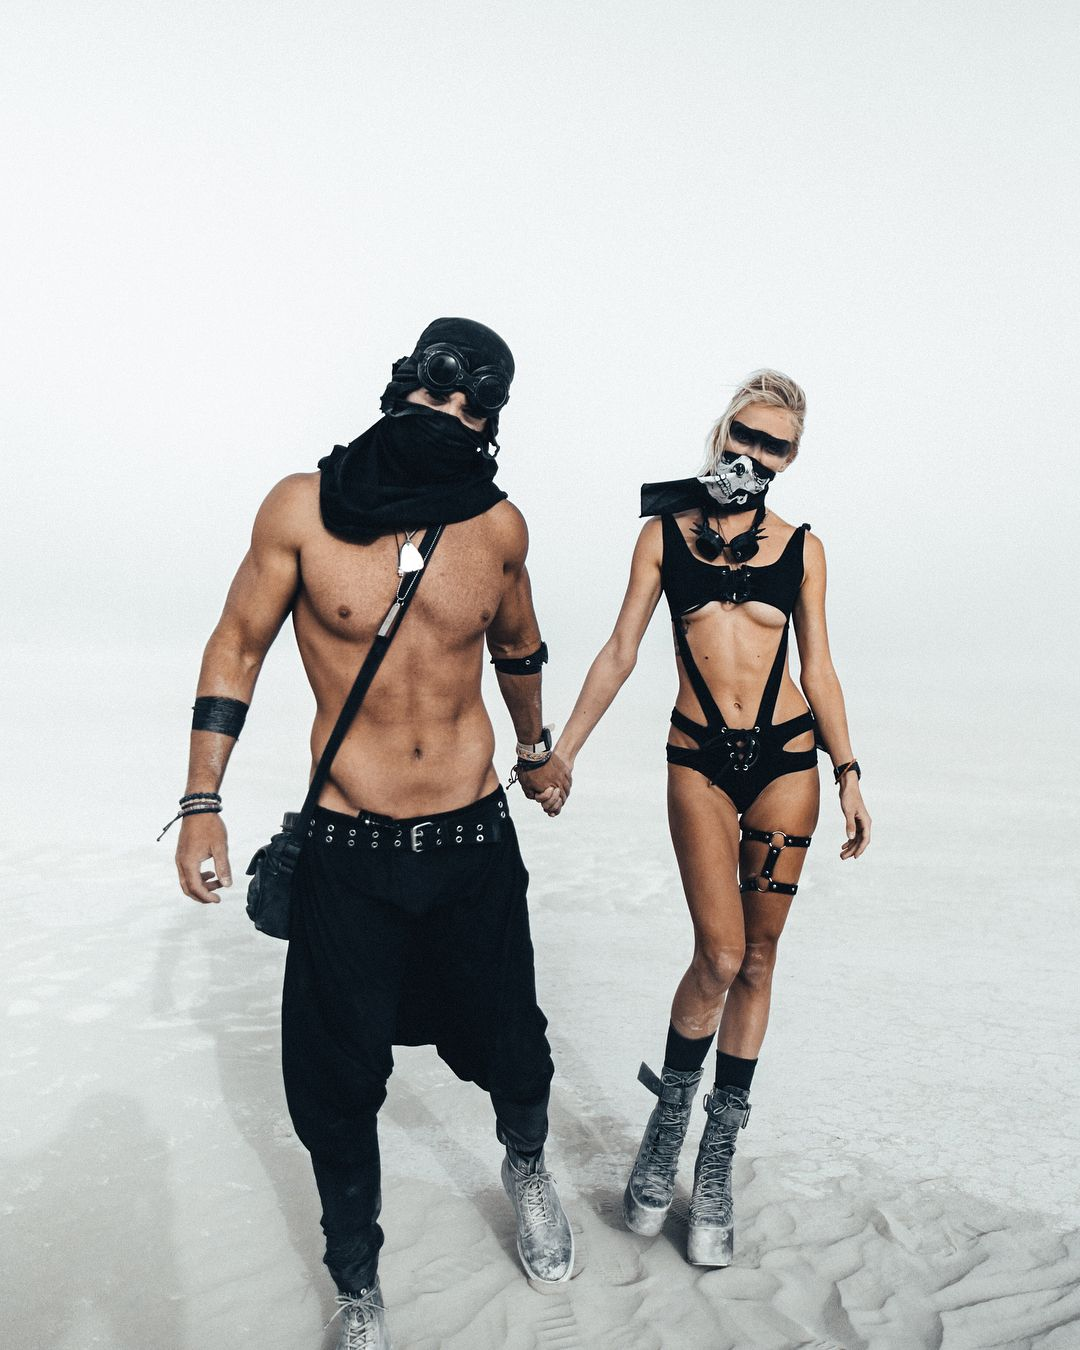 (@graceannerickson) • (@moliverallen) Burning Man, Burning man fashion, burners, burner style, burner girls, burner guys, outfit, outfits #manoutfit